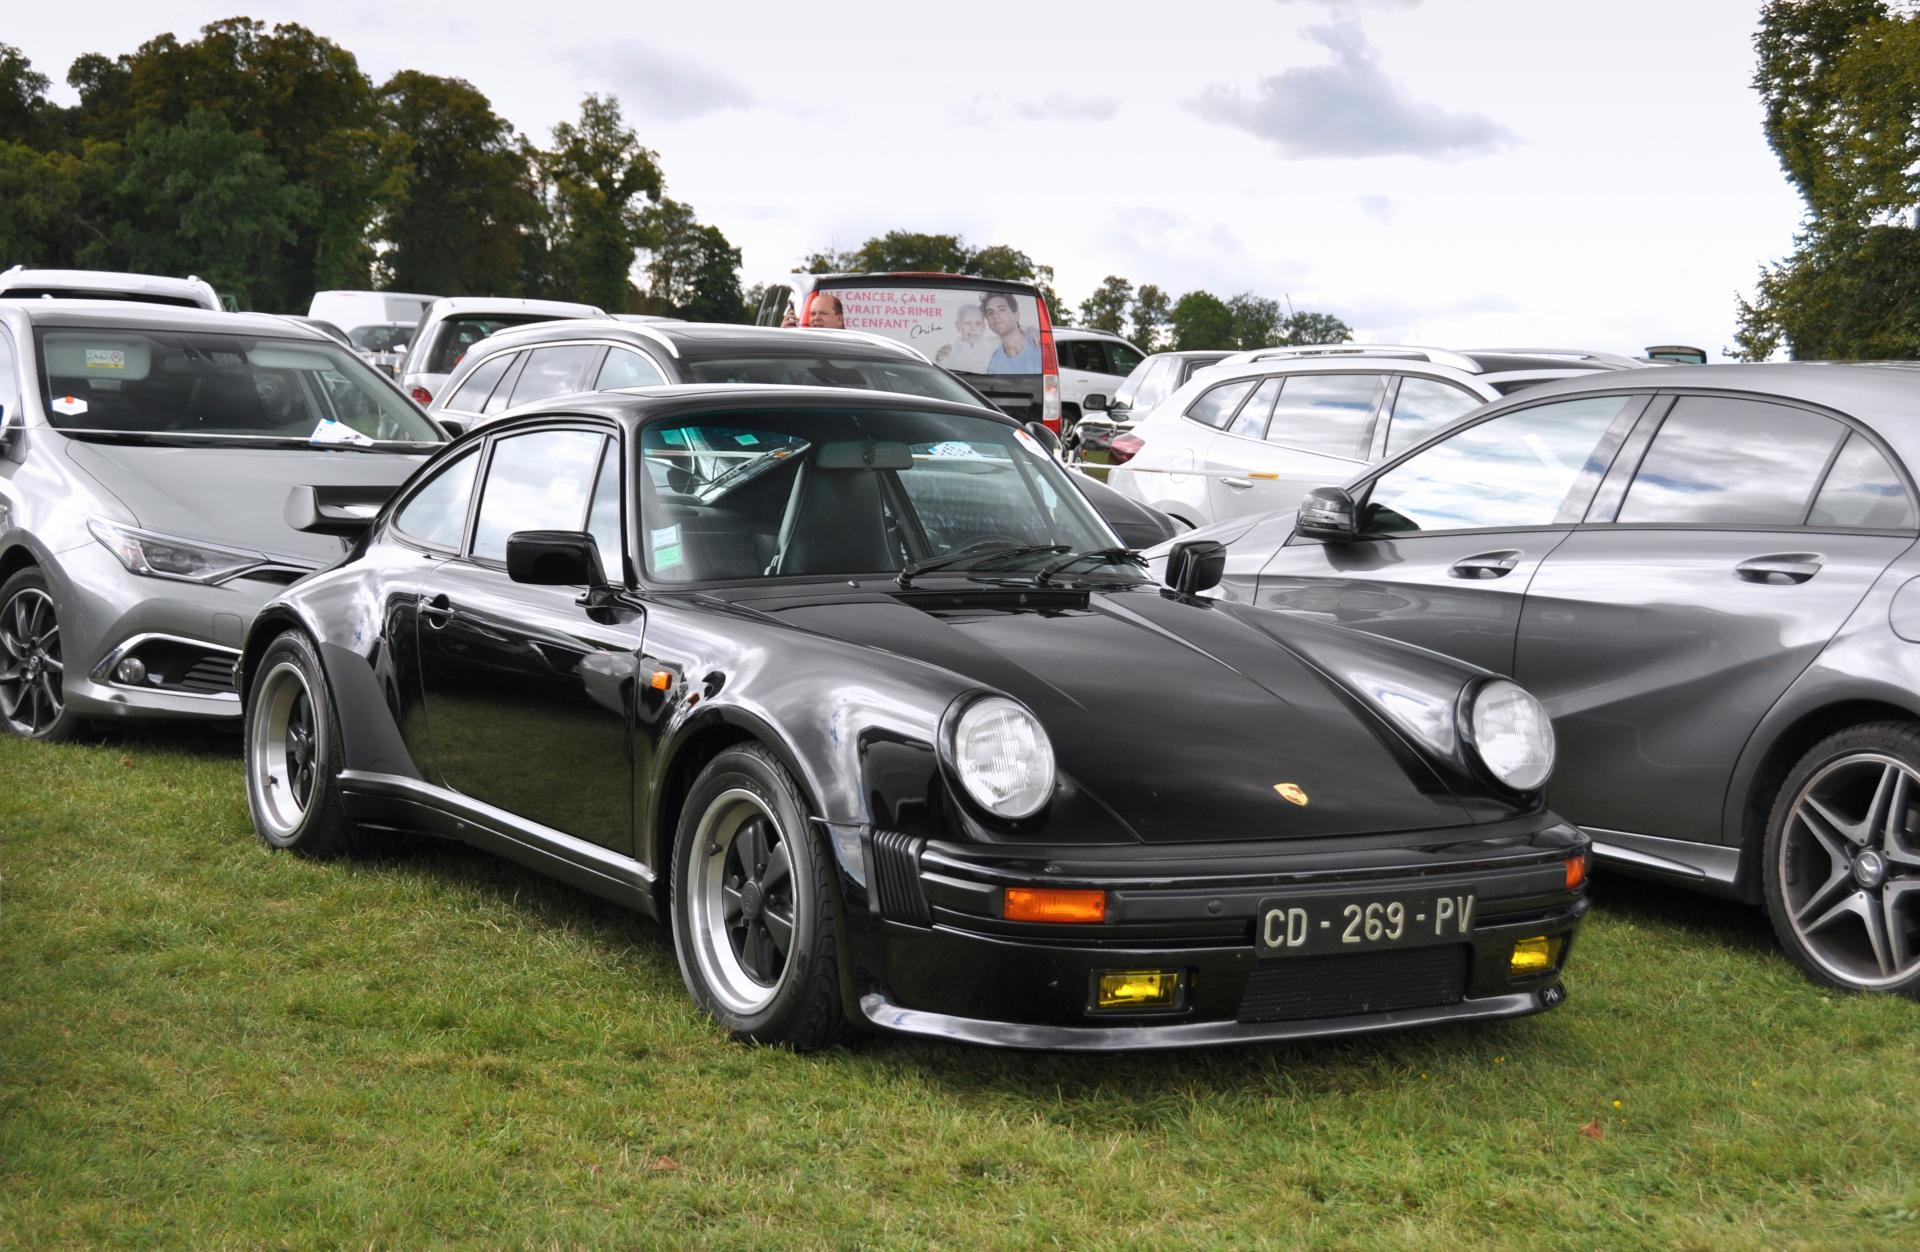 930 turbo s sonauto